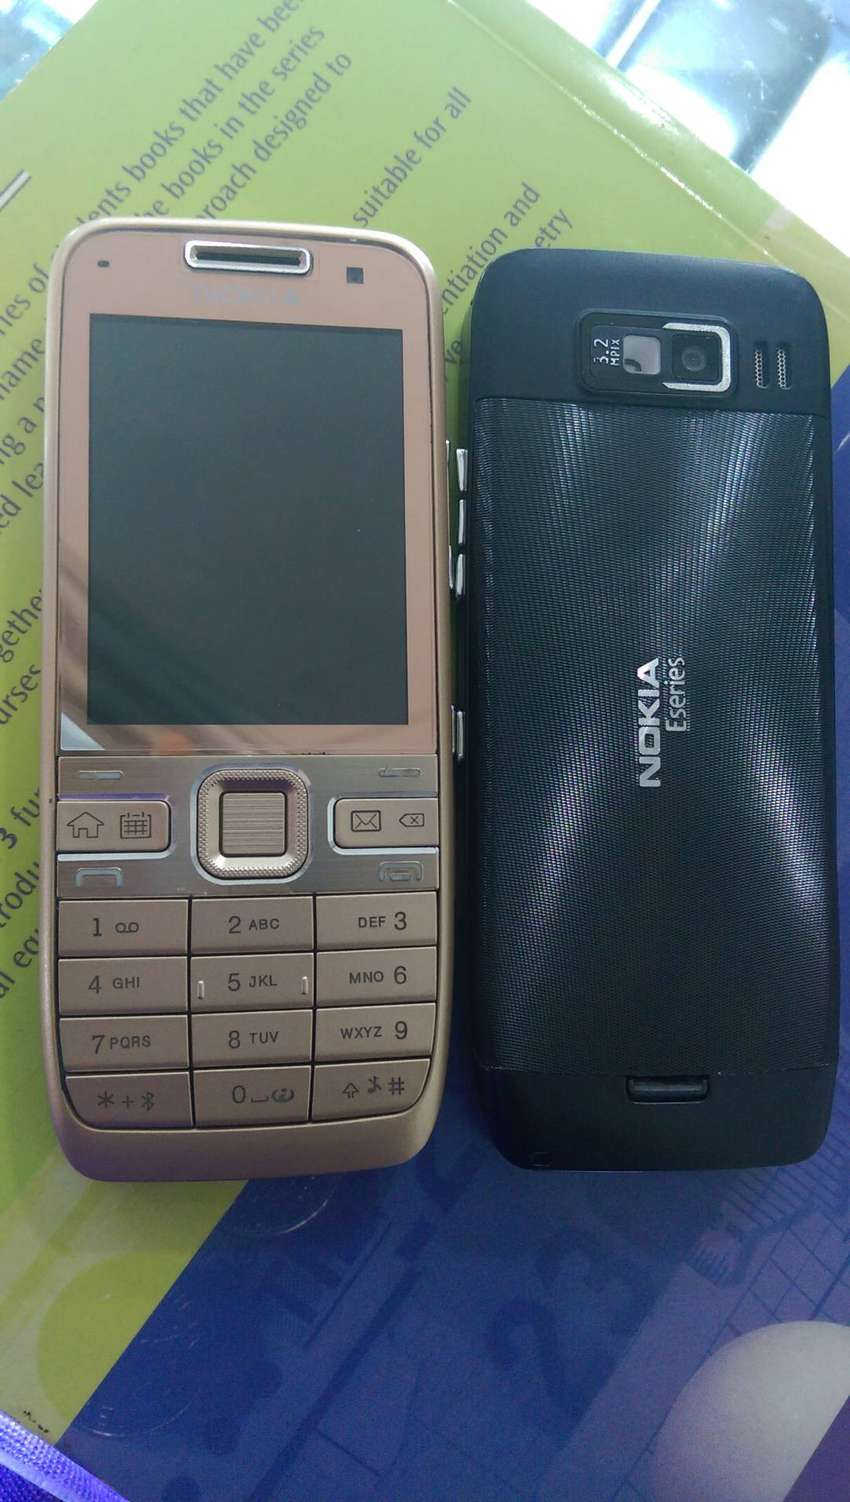 download whatsapp for my nokia e72